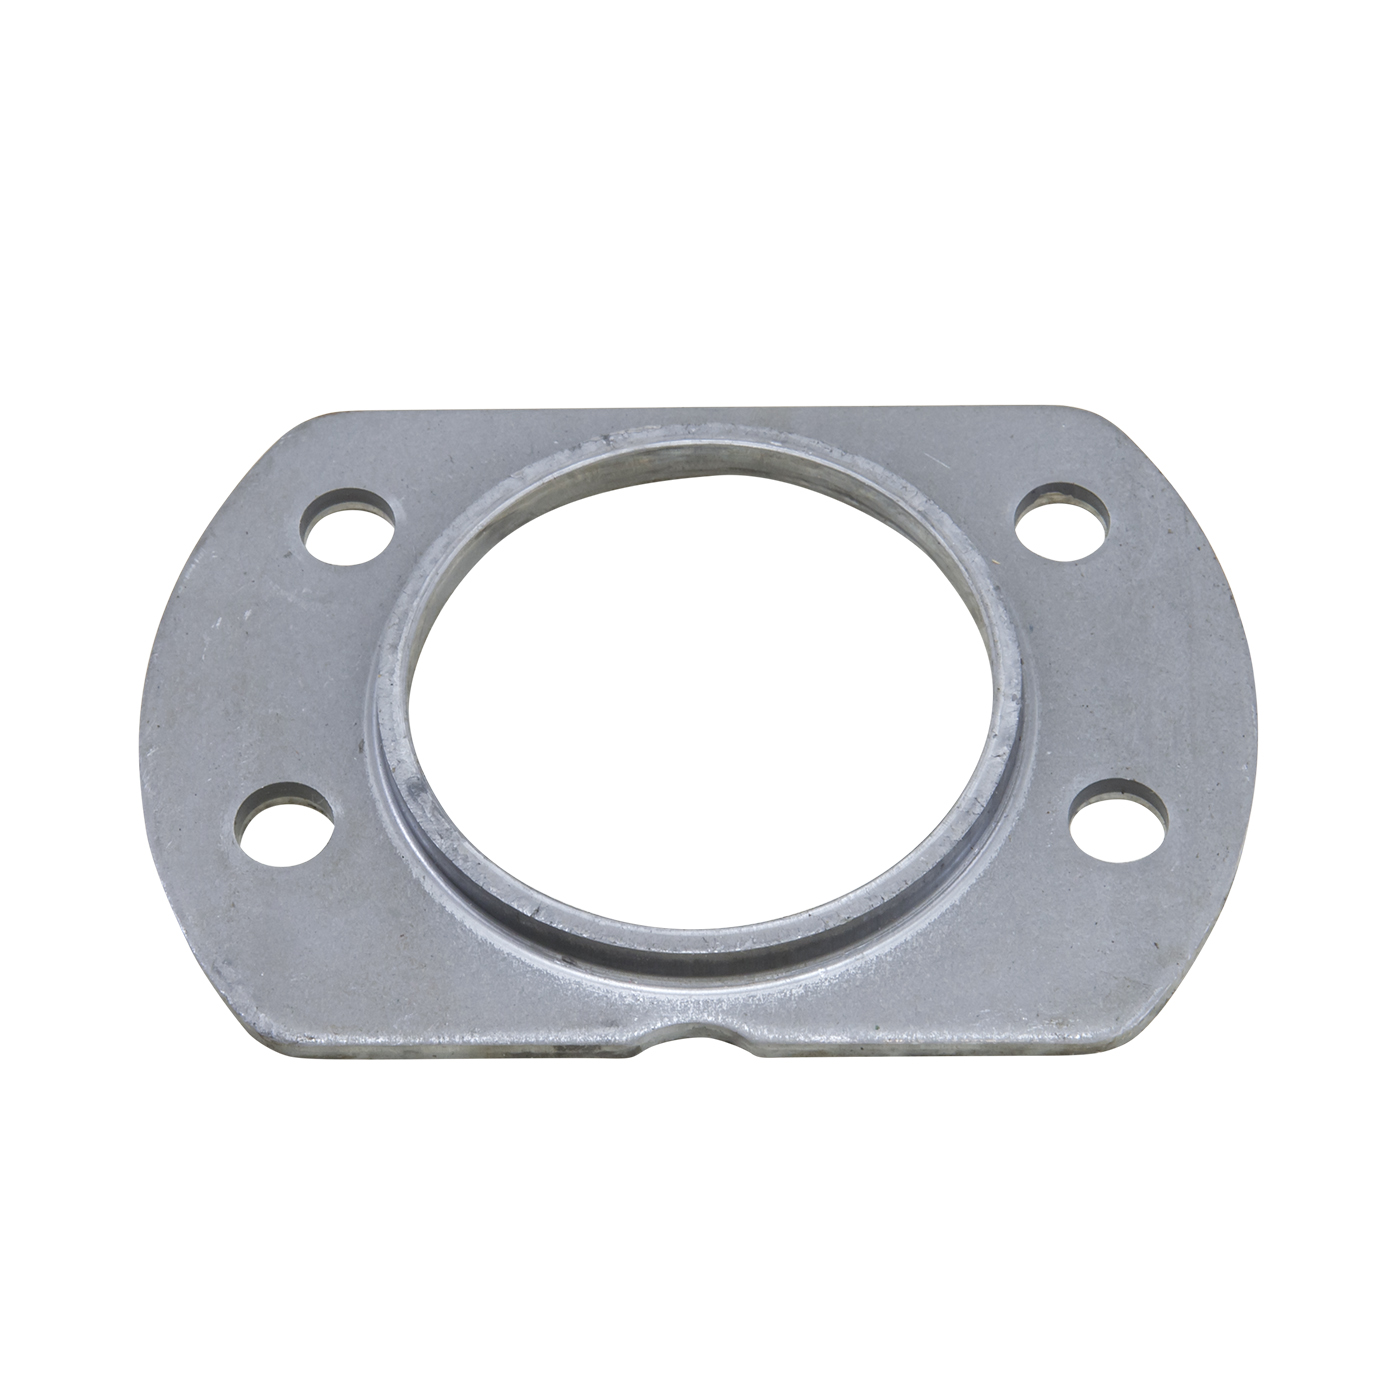 YSPRET-013 - Axle bearing retainer for Dana 44 rear in Jeep TJ